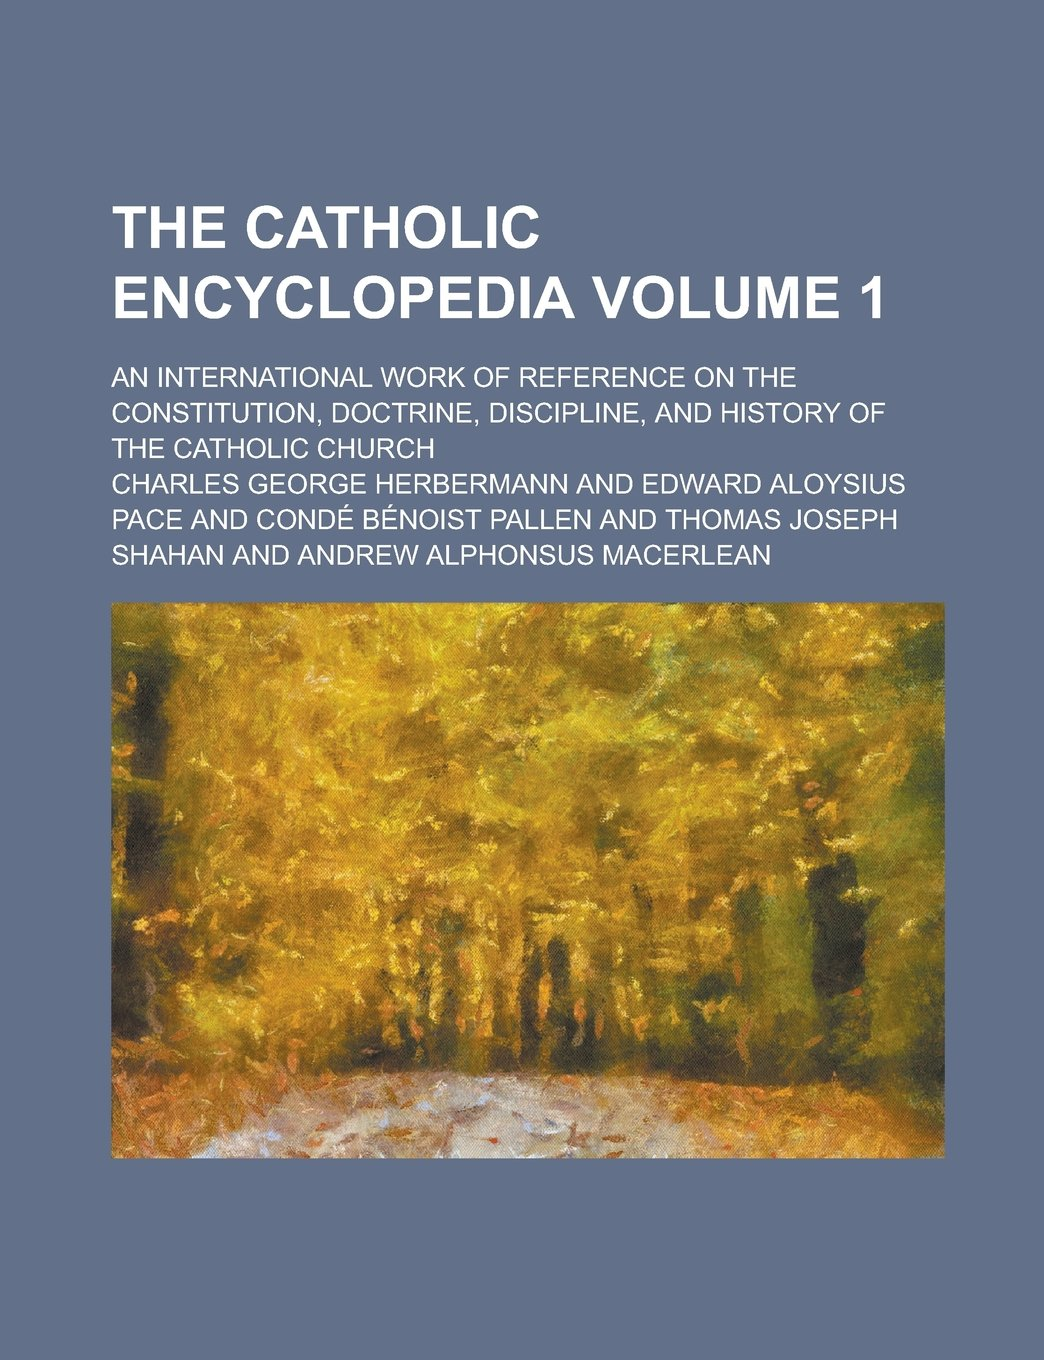 Read Online The Catholic encyclopedia; an international work of reference on the constitution, doctrine, discipline, and history of the Catholic church Volume 1 pdf epub